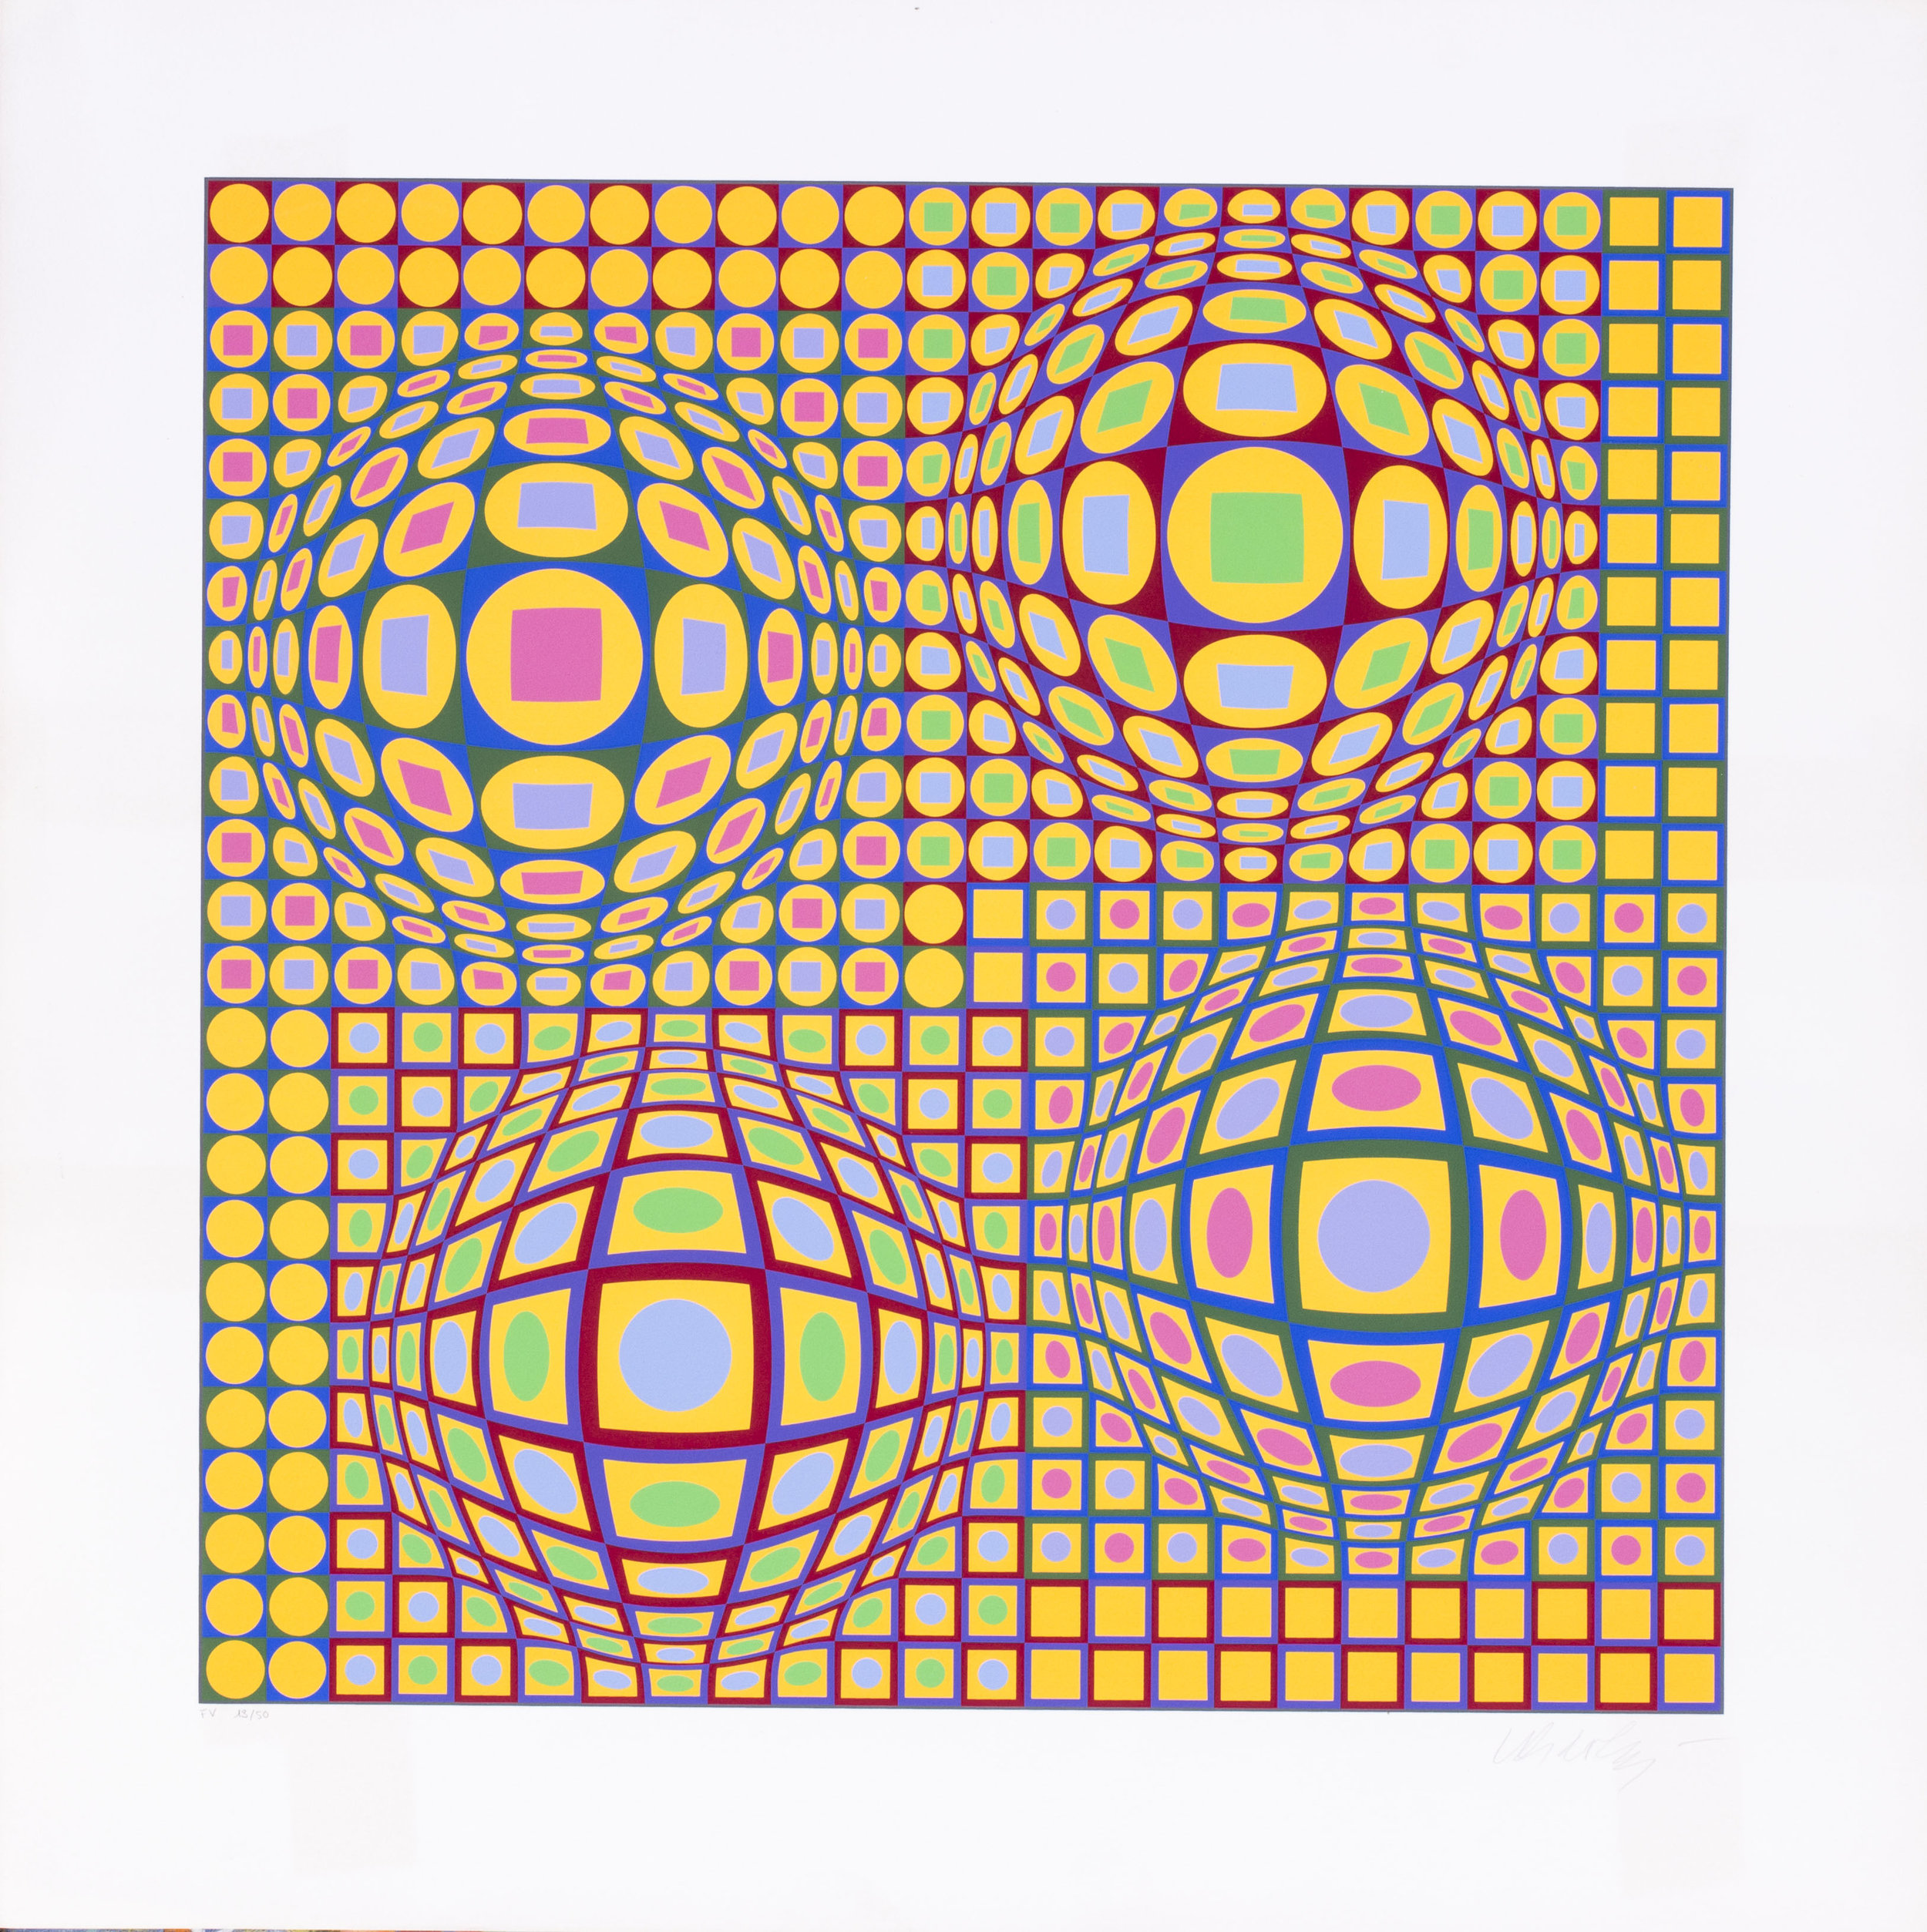 Victor Vasarely   Quadrature, 1976-1978   Numbered 'F.V. 13/50' and signed 'Vasarely' (lower right)  Screen print  13.3/4 x 13.3/4 in. (78 x 78 cm.)   SOLD